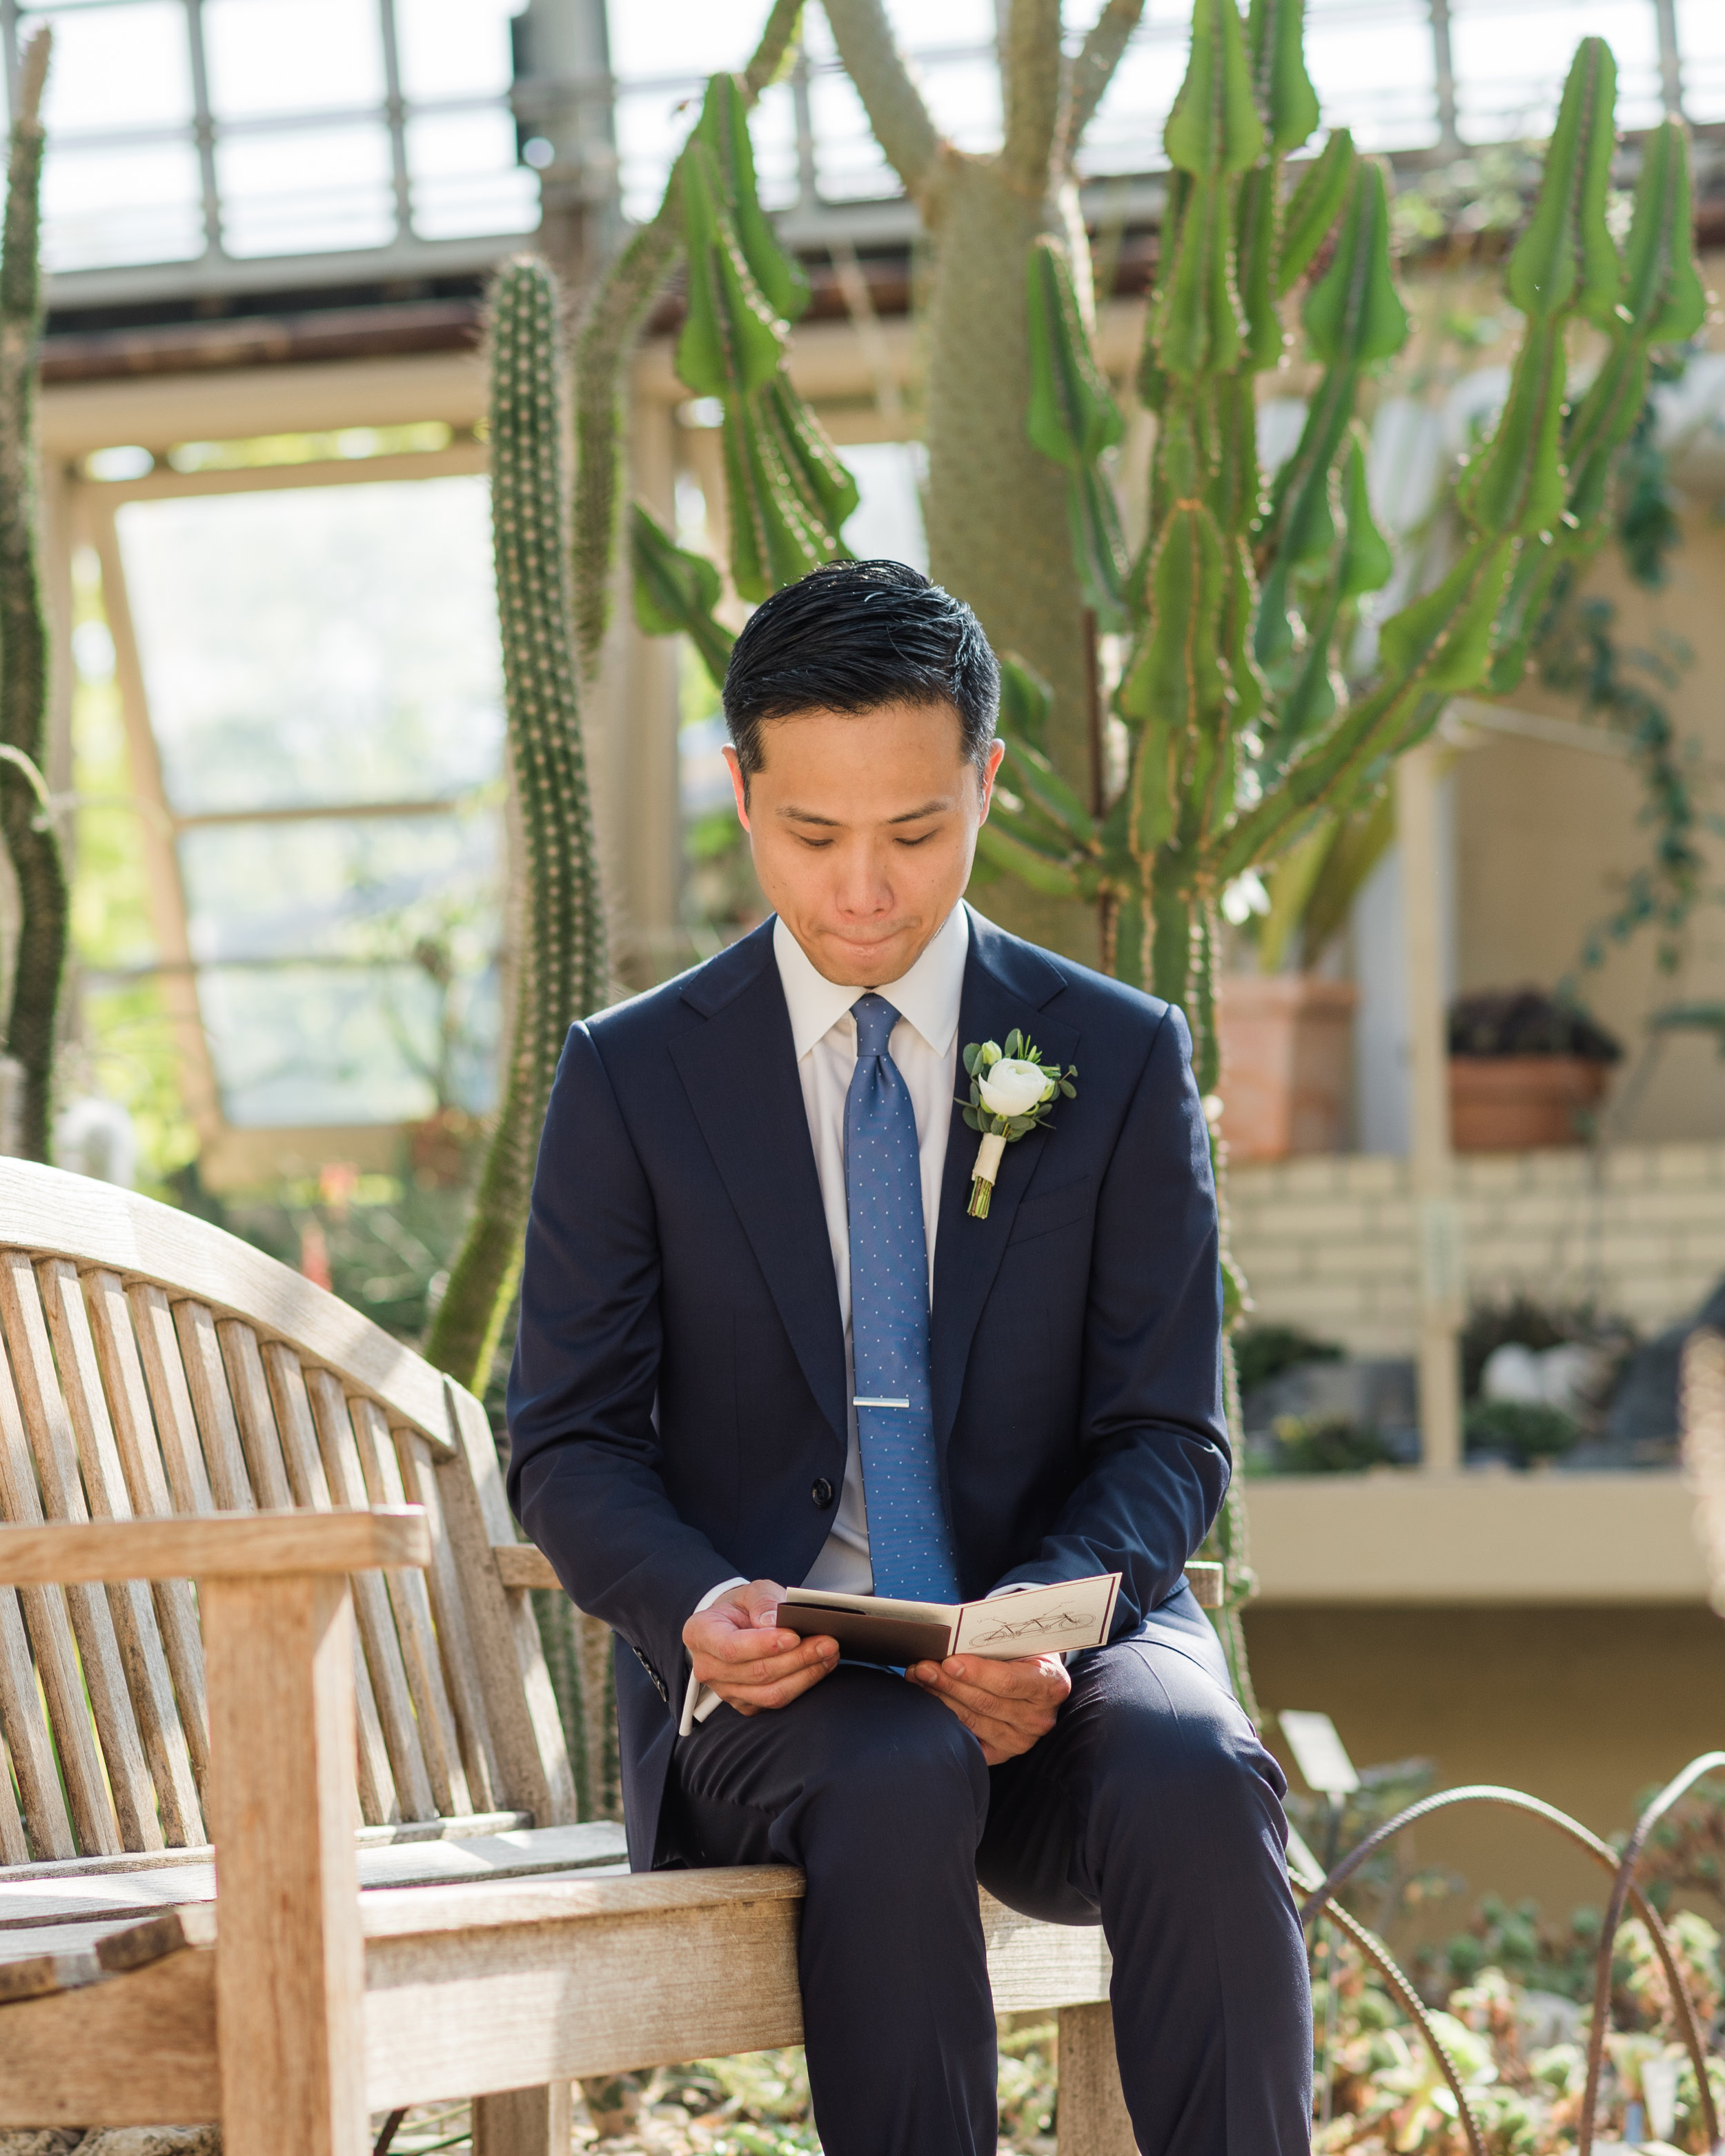 Garfield_Park_Conservatory_Wedding_Gavyn_Taylor_Photo_111.JPG